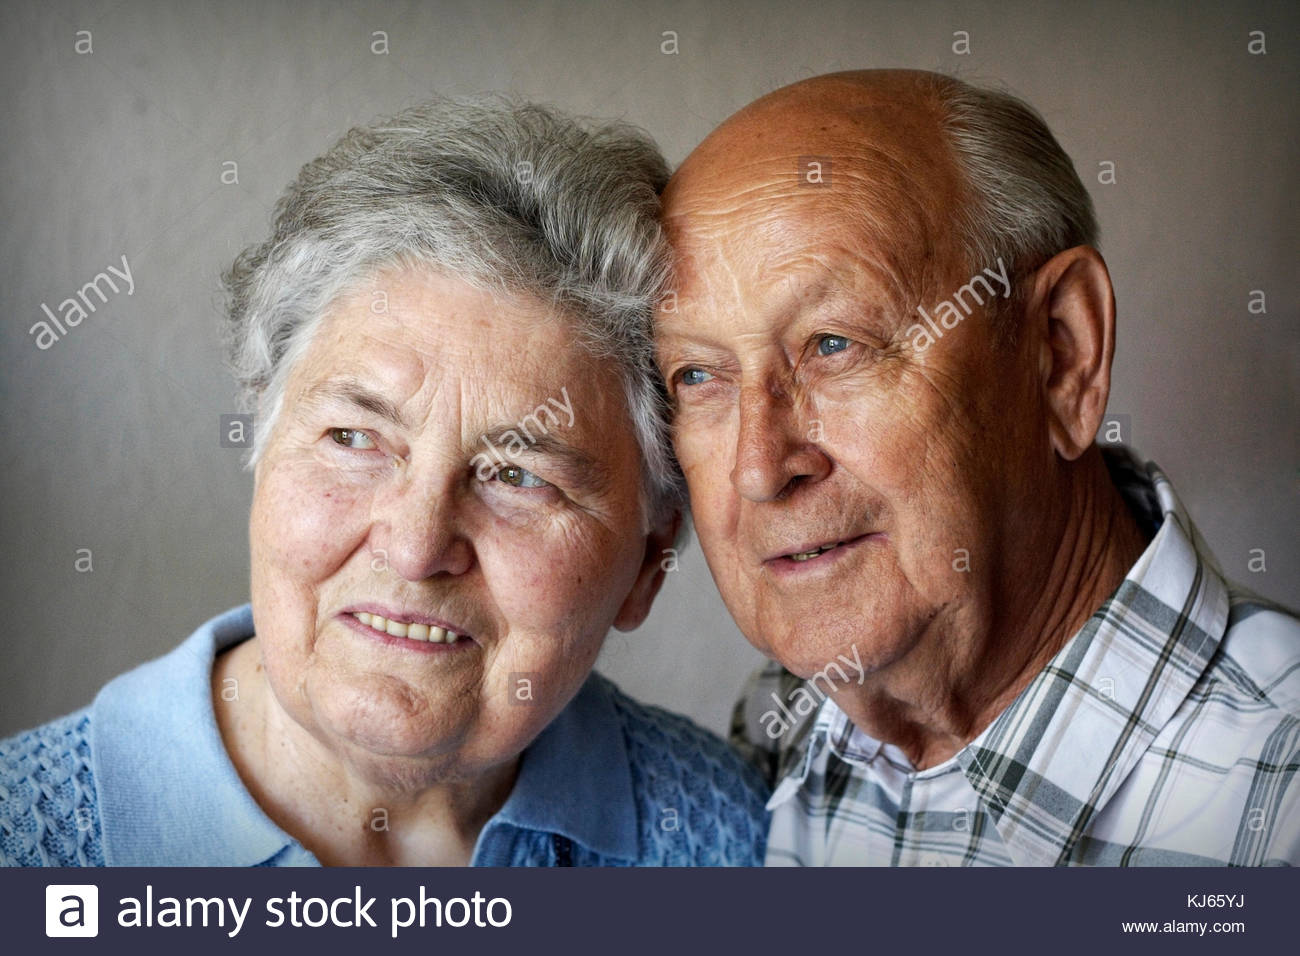 Old couple shares affections - Stock Image